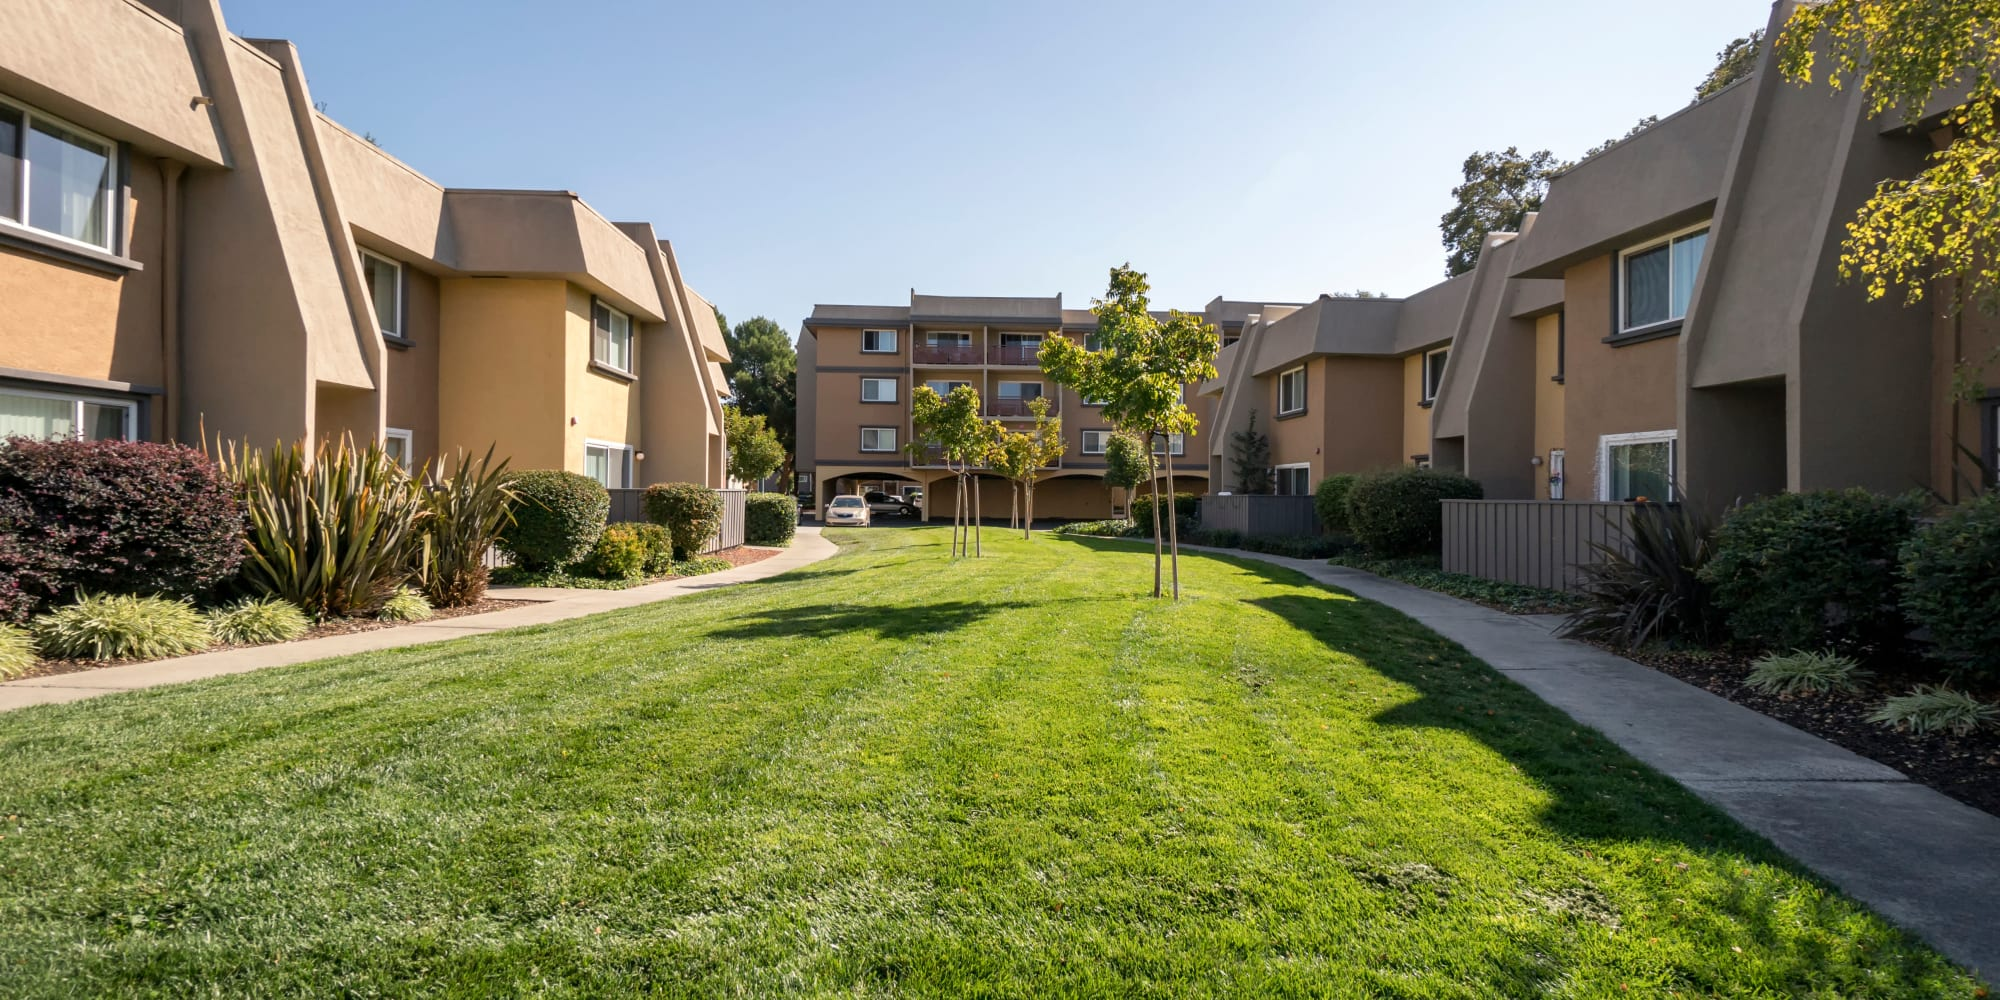 Apartments at Waterstone Fremont in Fremont, California